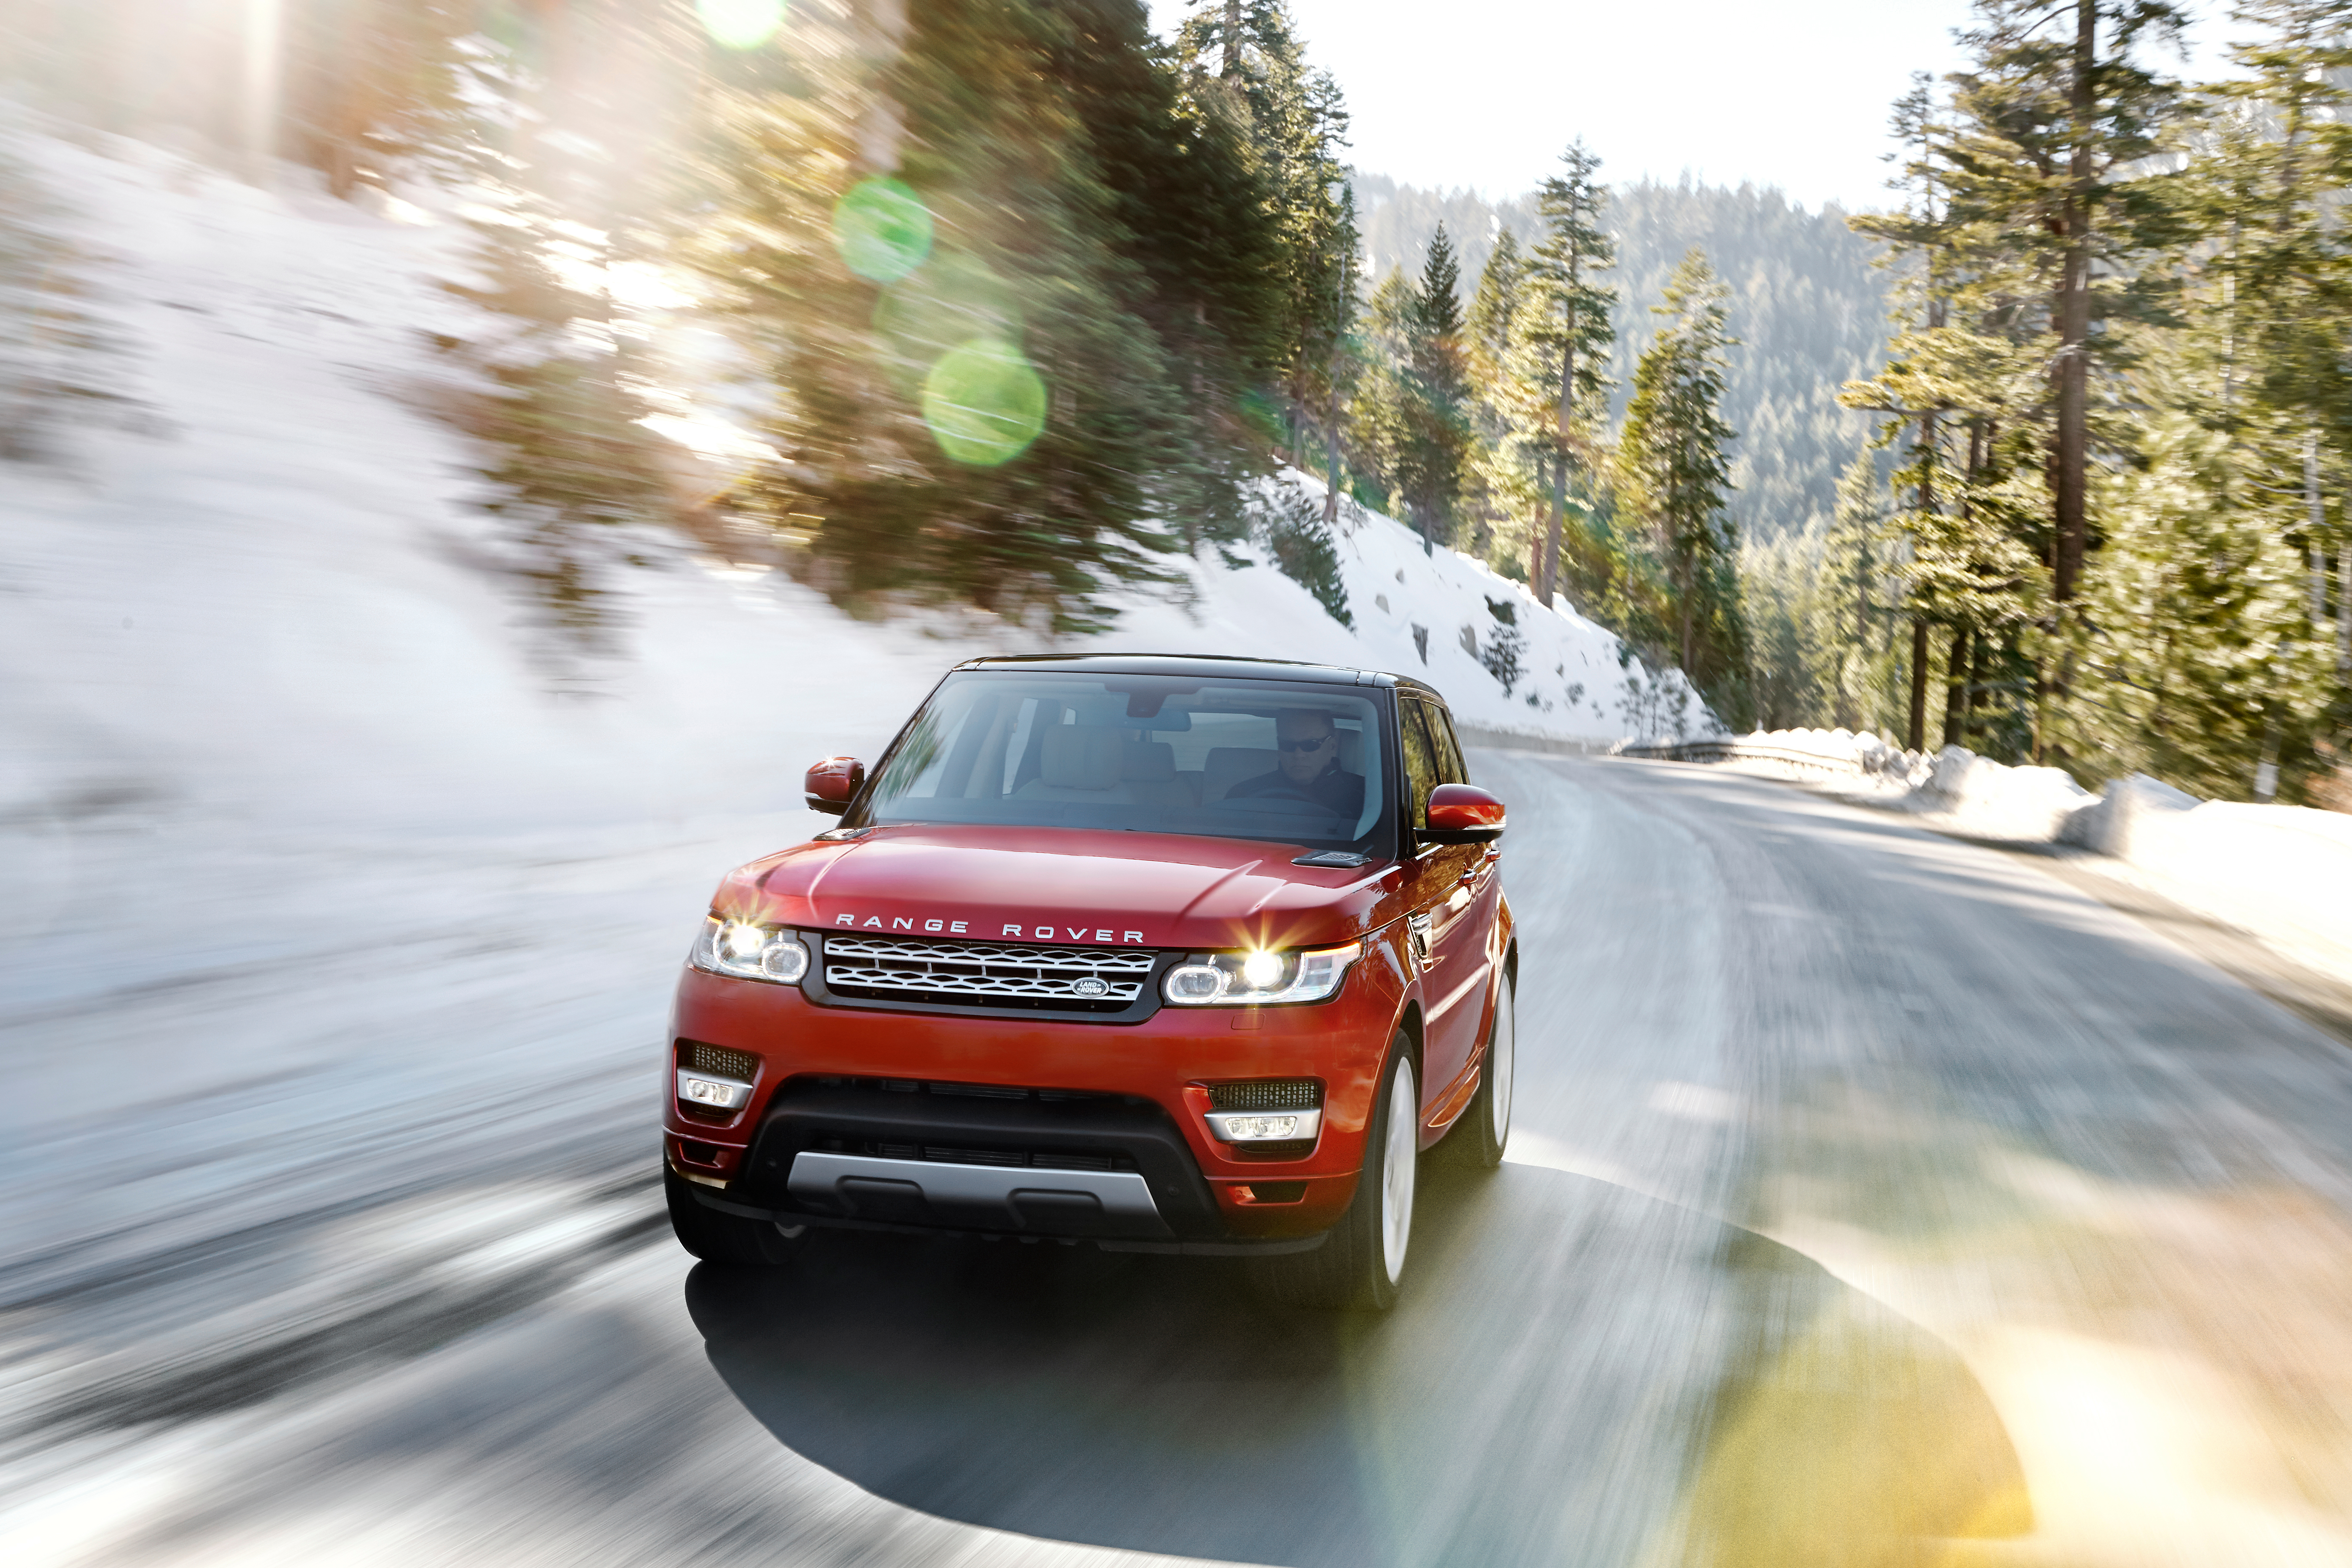 The Range Rover Sport 2013's electronic gadgets were often found to be faulty, Which? says